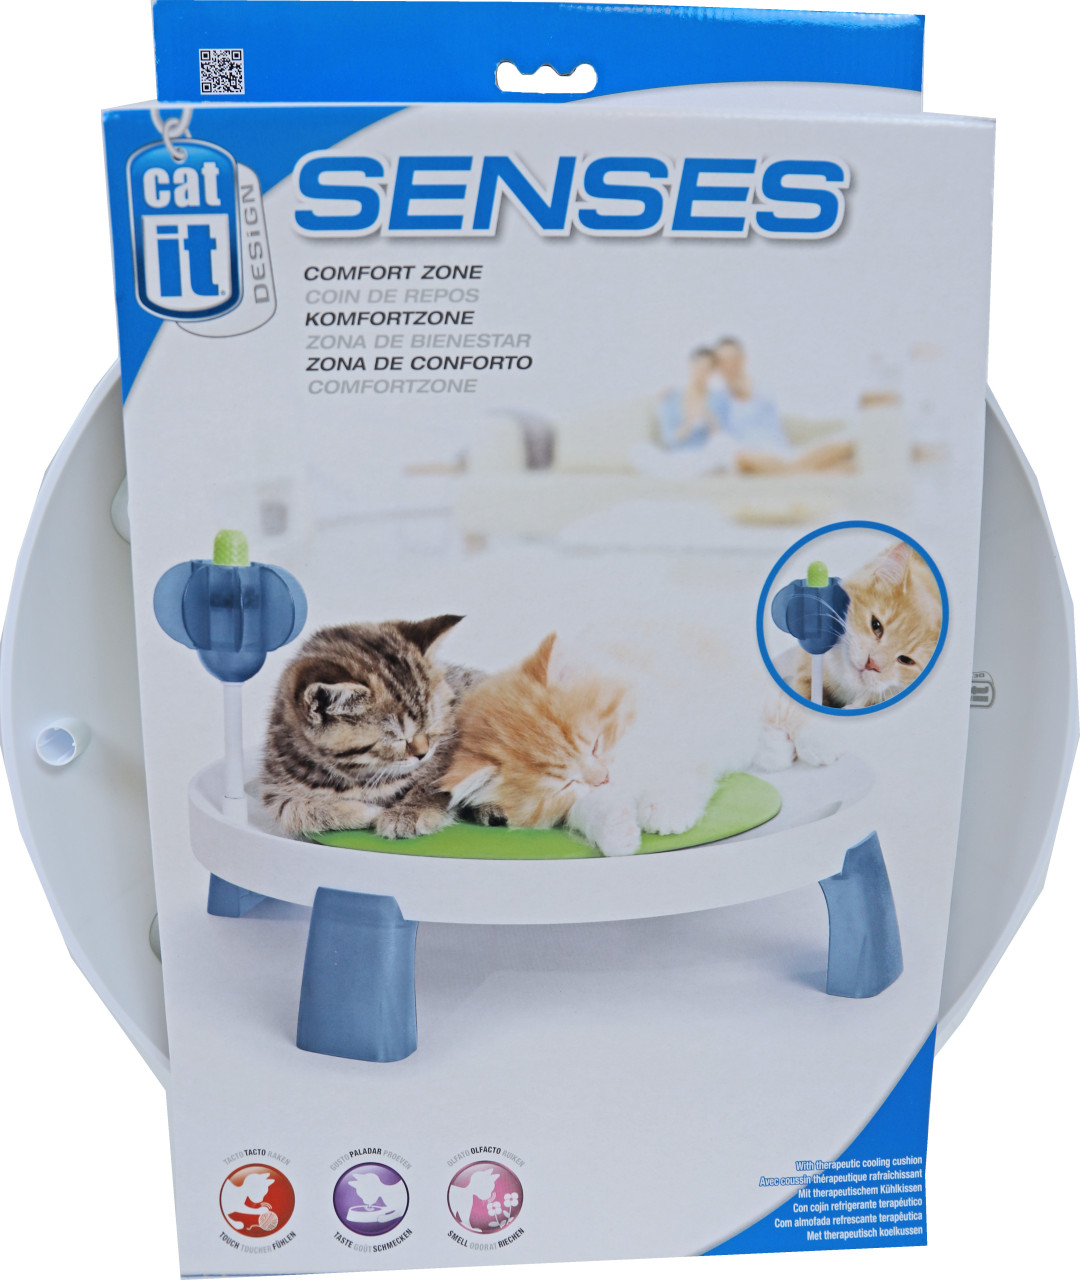 Catit Design Senses Comfort Zone